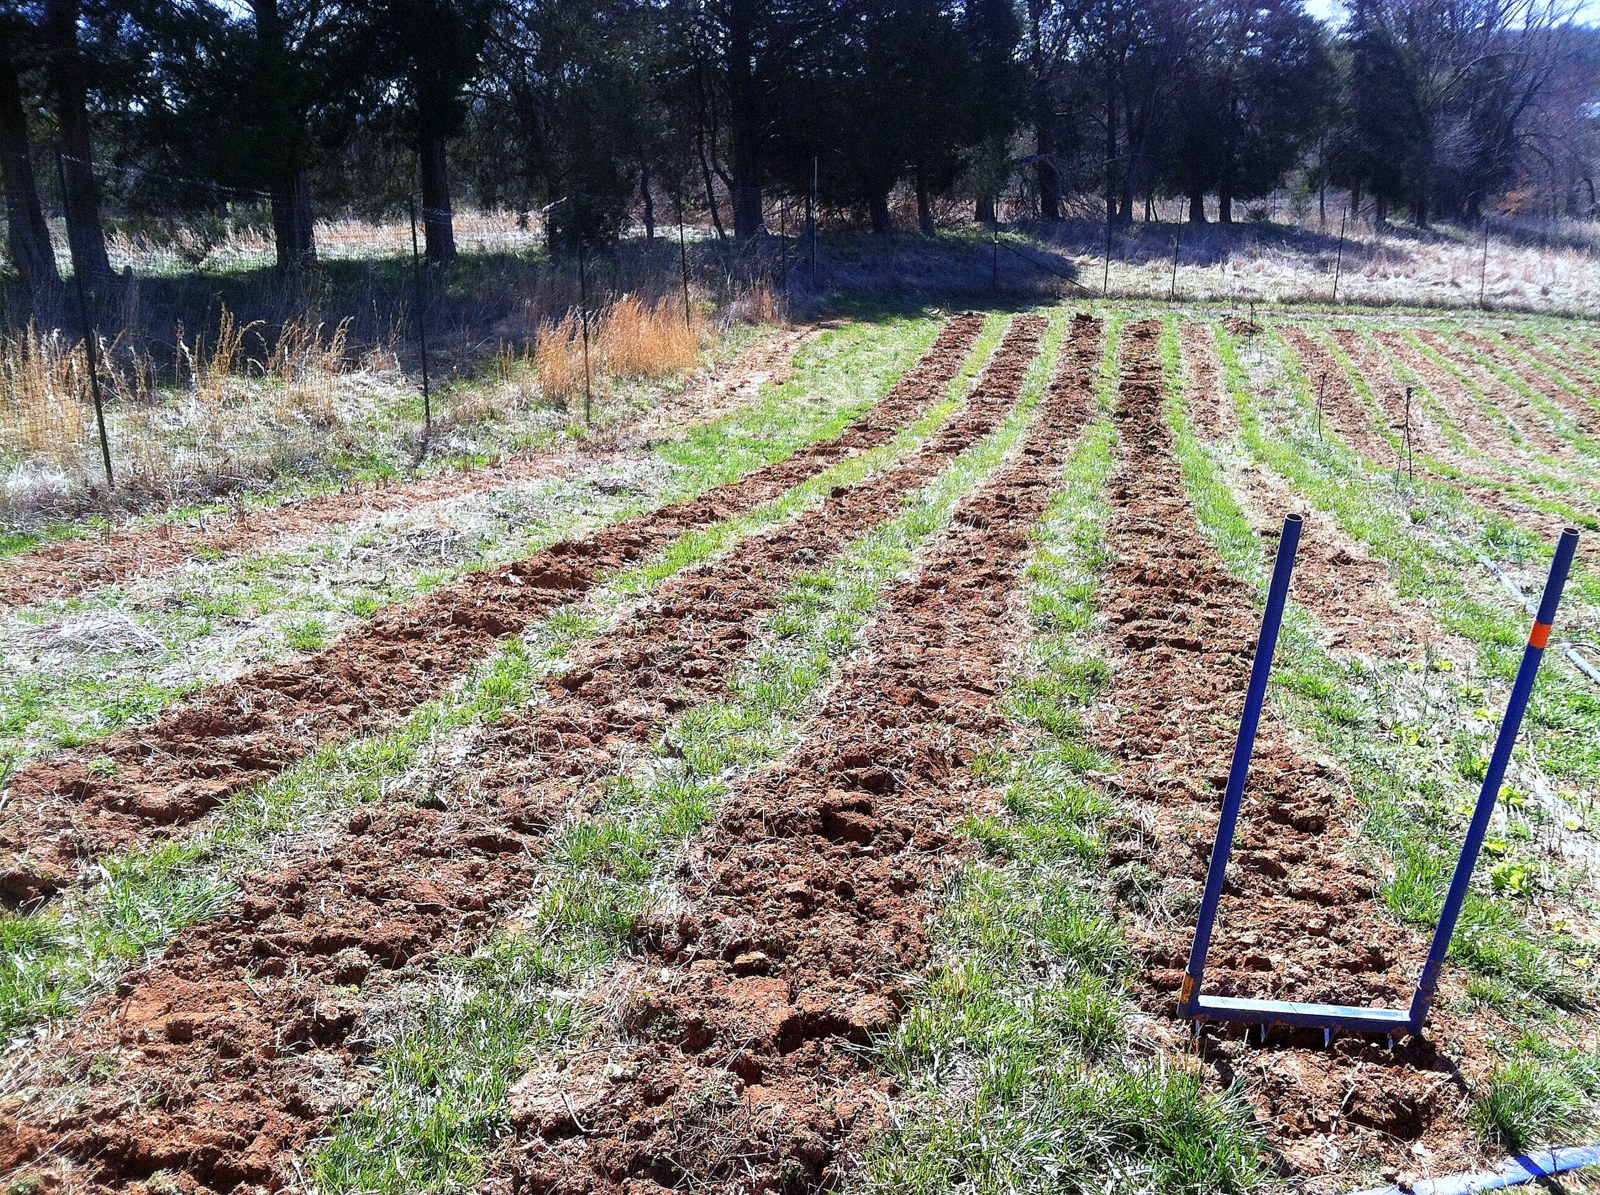 One of you asked how the parsnips were so long in this clay. I broadfork all the root beds -- carrots, parsnips, burdock, sweet potato, etc. It takes up to an hour a bed, so doing it for all 250 beds would be a bit much. But doing it for just the roots is a great way to spend a morning. Our soil is still too chunky, so I had to wait for the tractor to return before I could seed these to carrots.